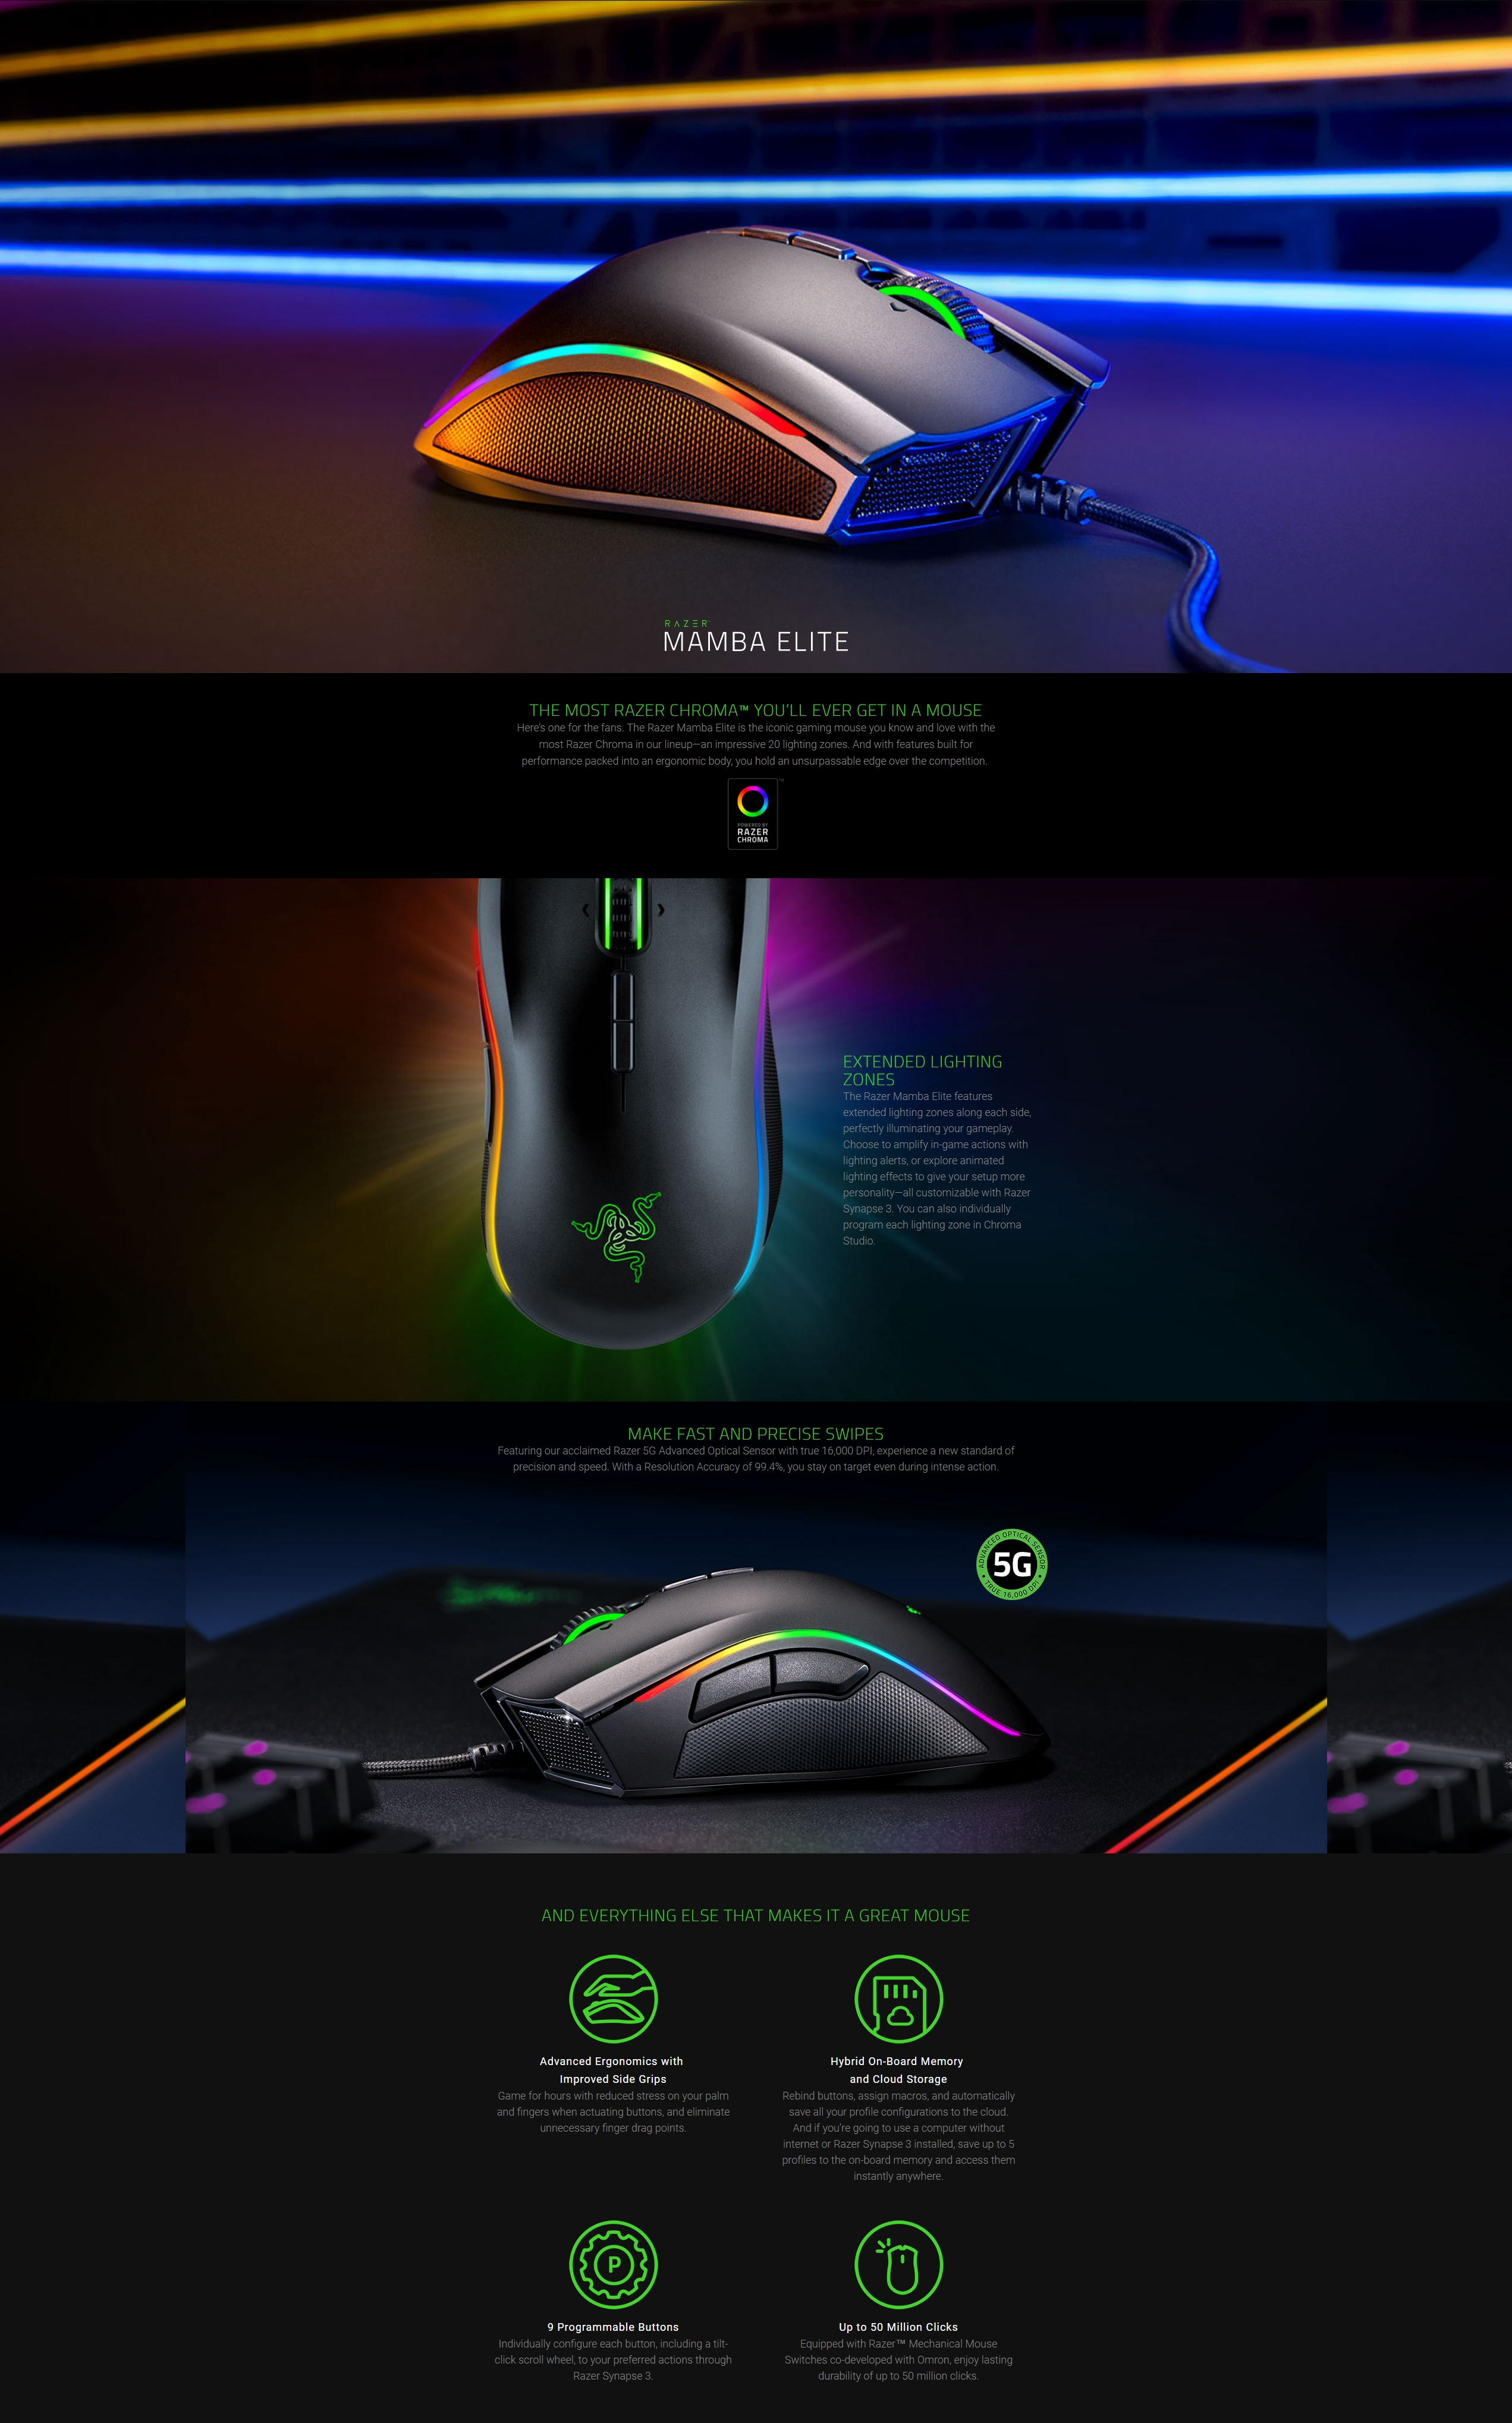 A large marketing image providing additional information about the product Razer Mamba Elite Gaming Mouse - Additional alt info not provided